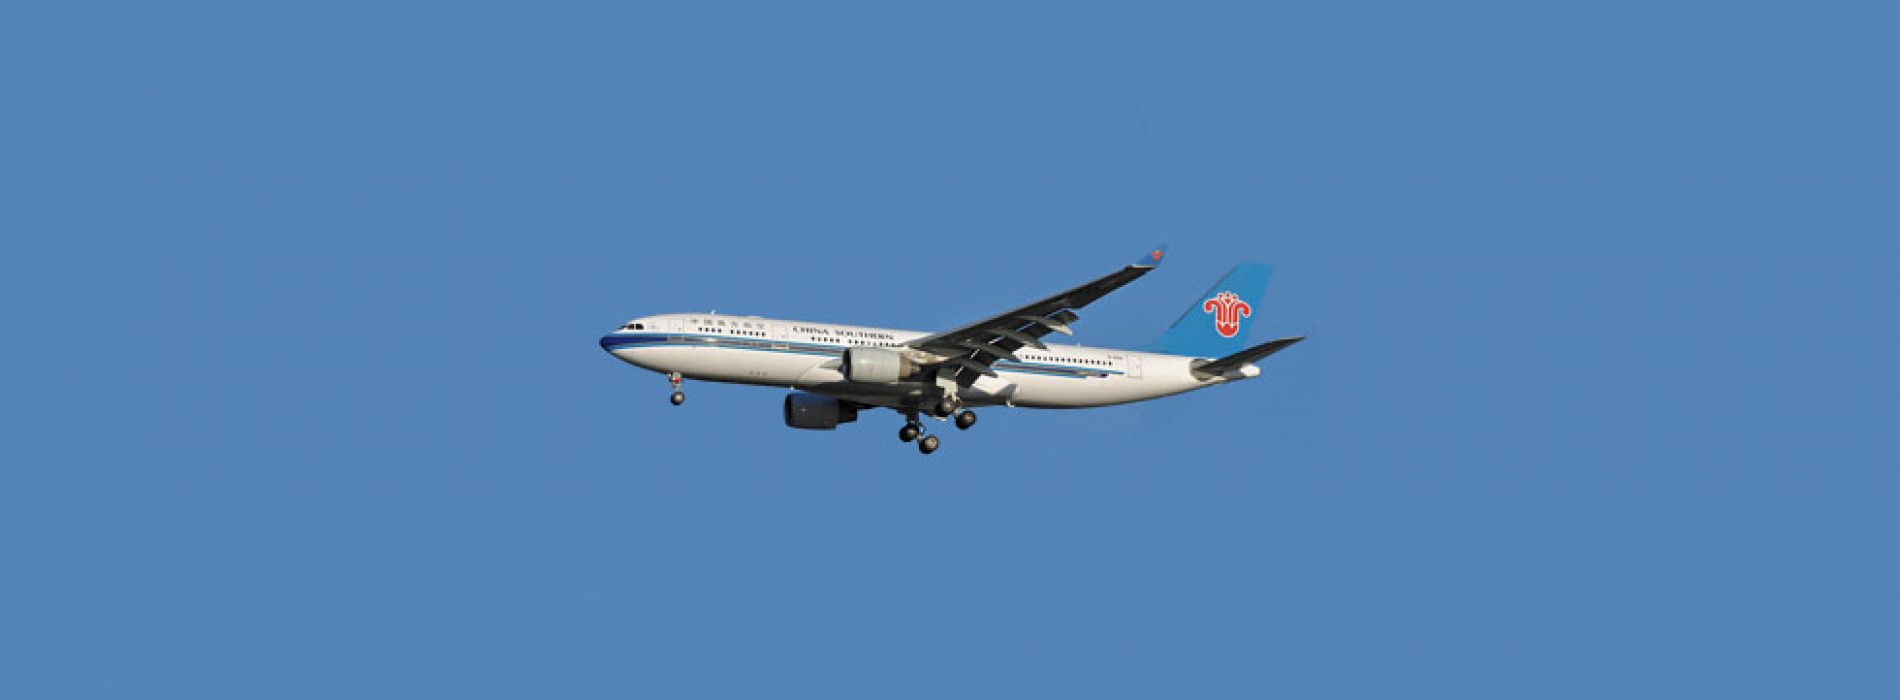 China Southern Airlines confirms $8.4bn Boeing order